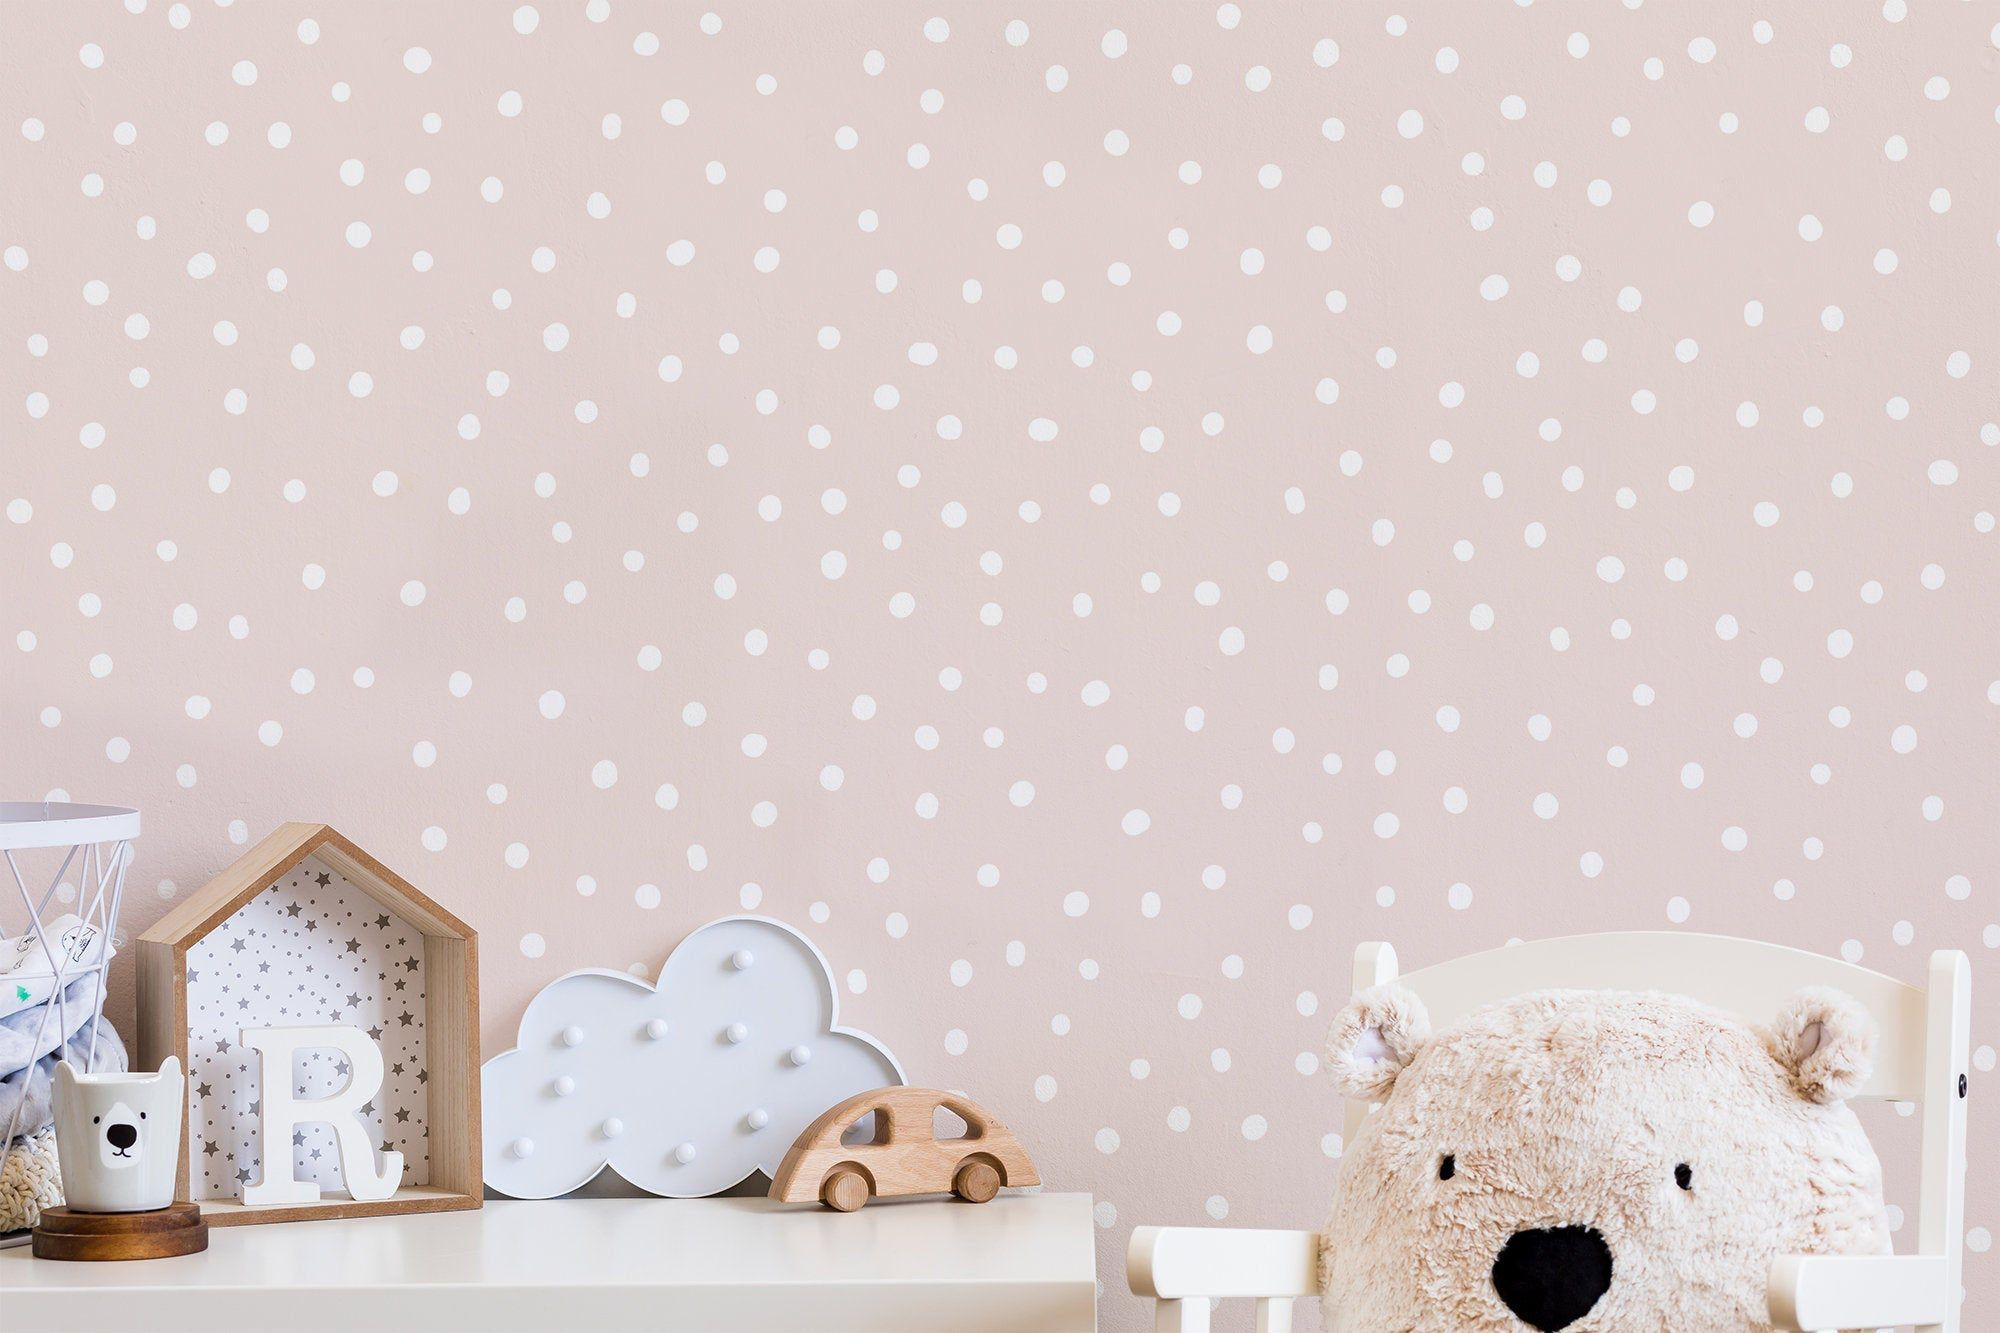 Pink White Polka Dot Peel And Stick Wallpaper Removable Etsy Girl Bedroom Decor Removable Wallpaper Peel And Stick Wallpaper